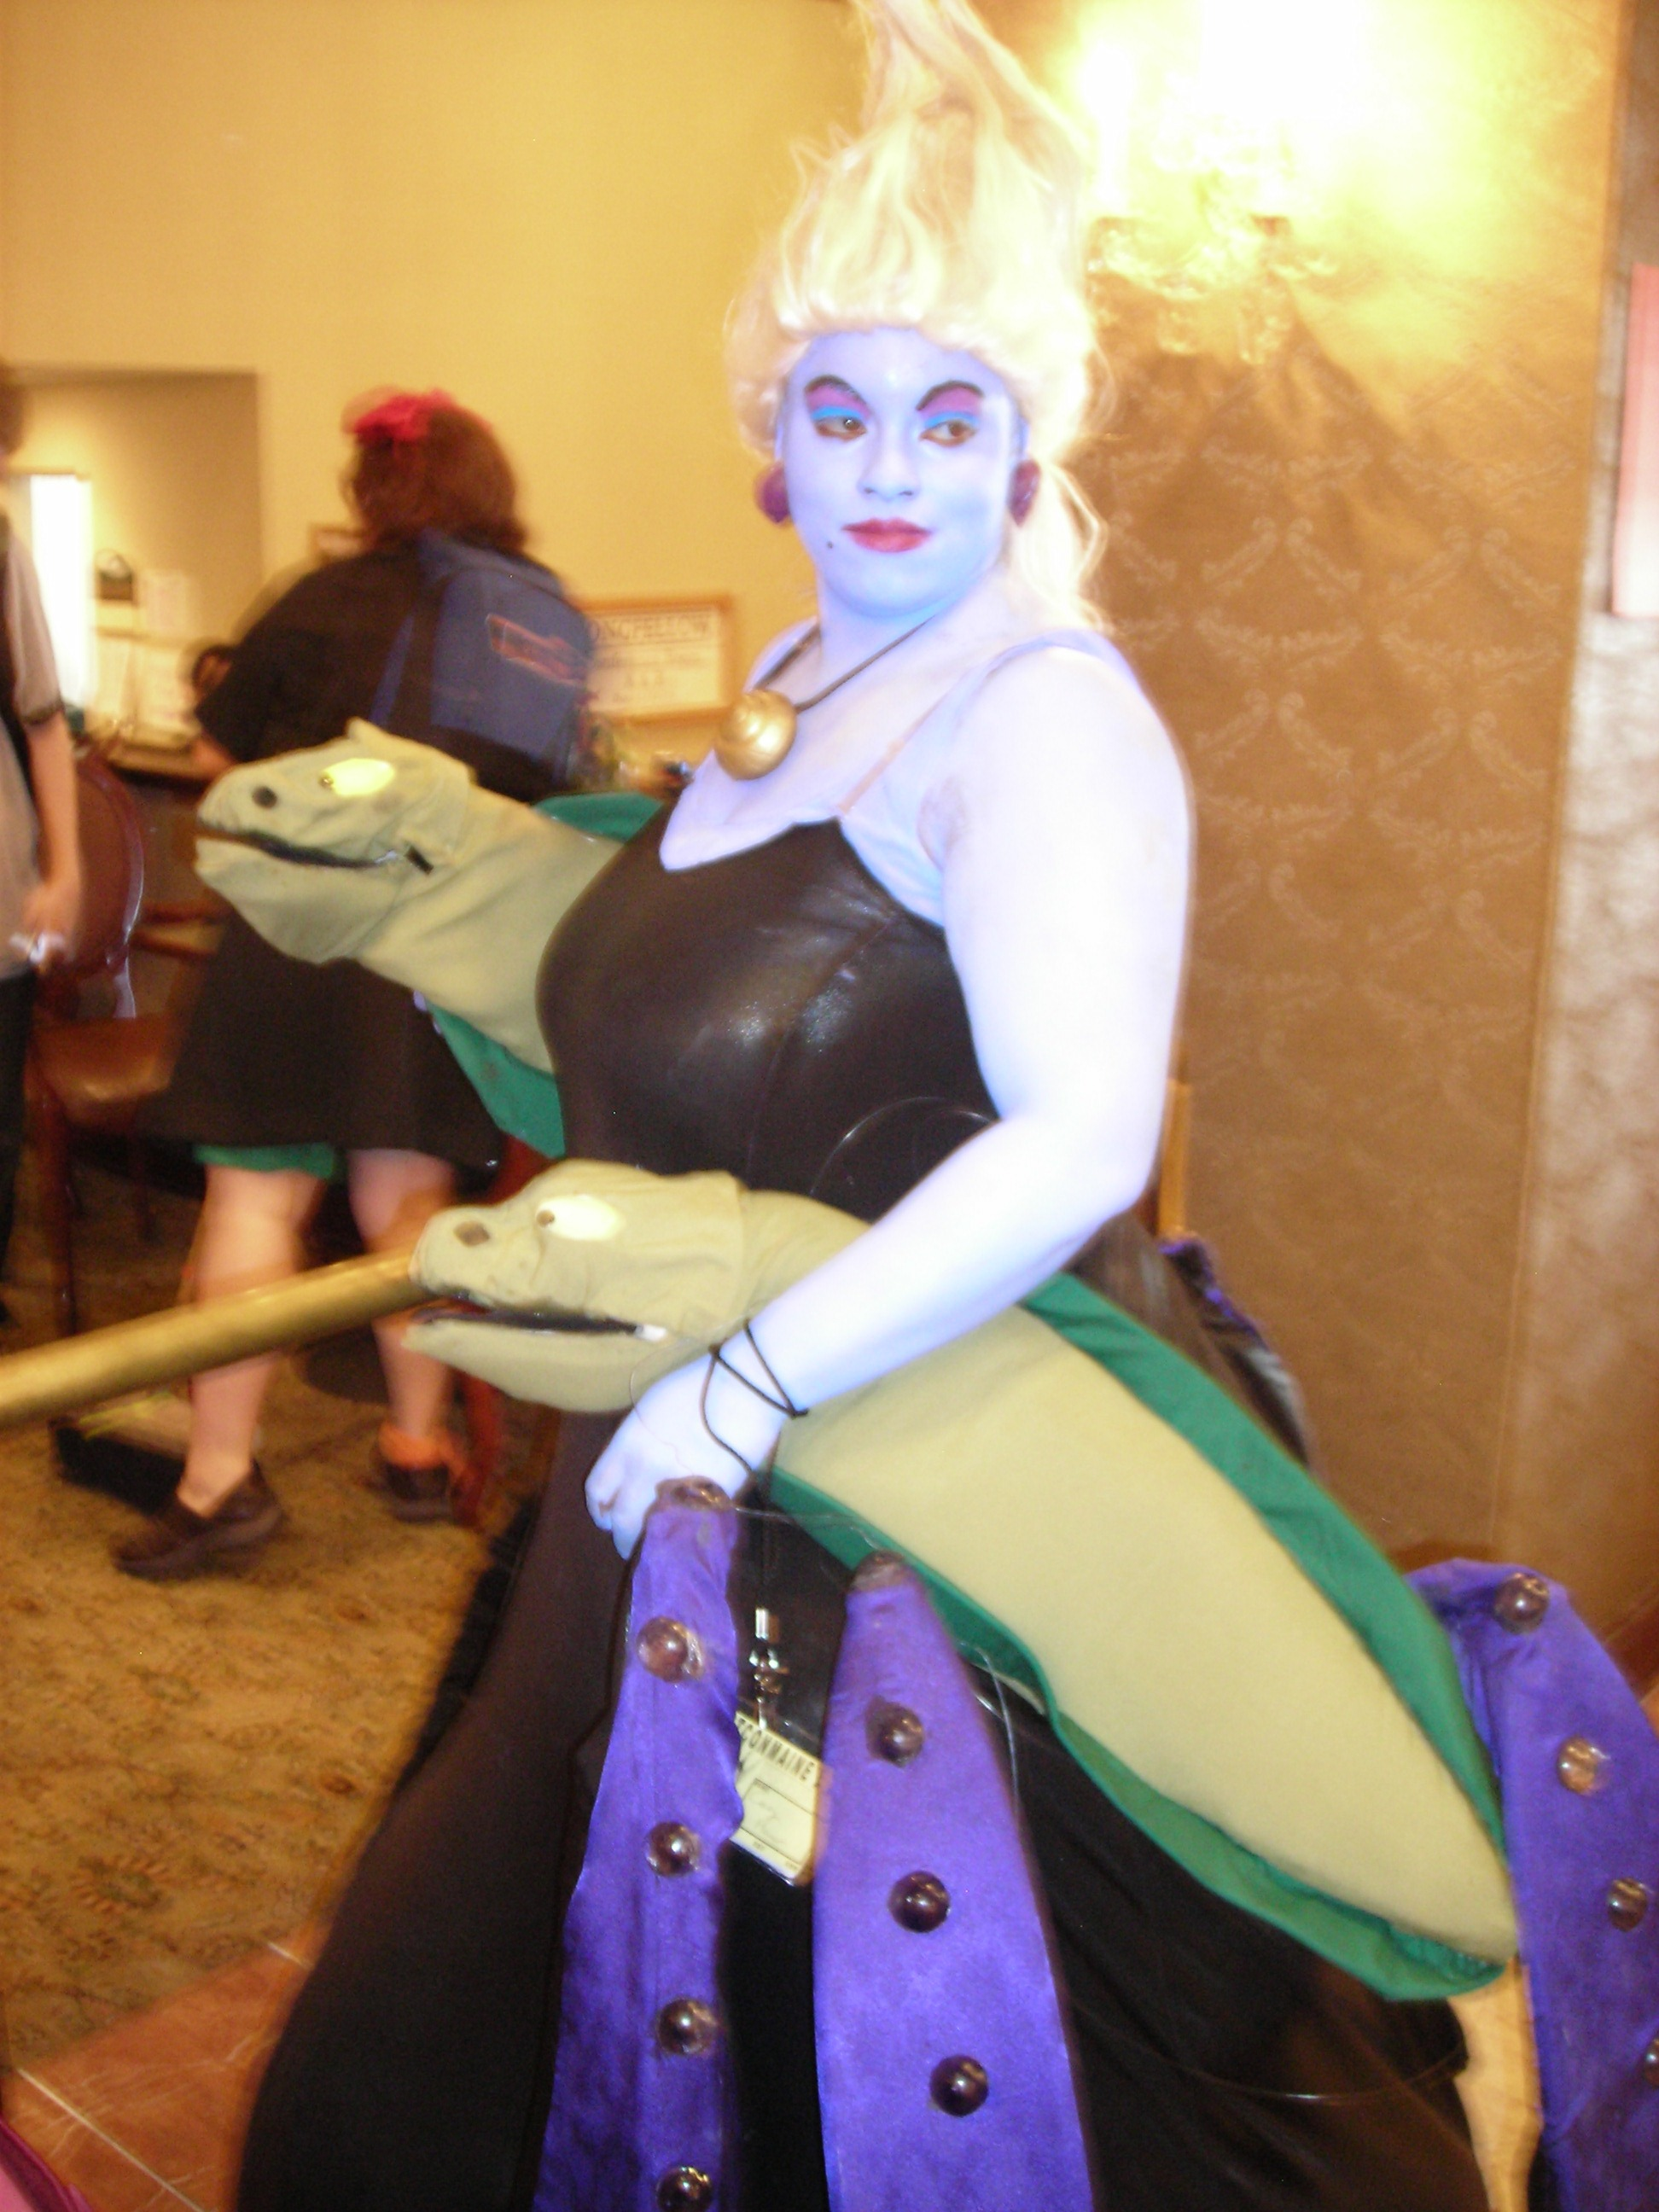 Fabulous ursula costume at portconmaine broke hoedown fabulous ursula costume at portconmaine solutioingenieria Image collections